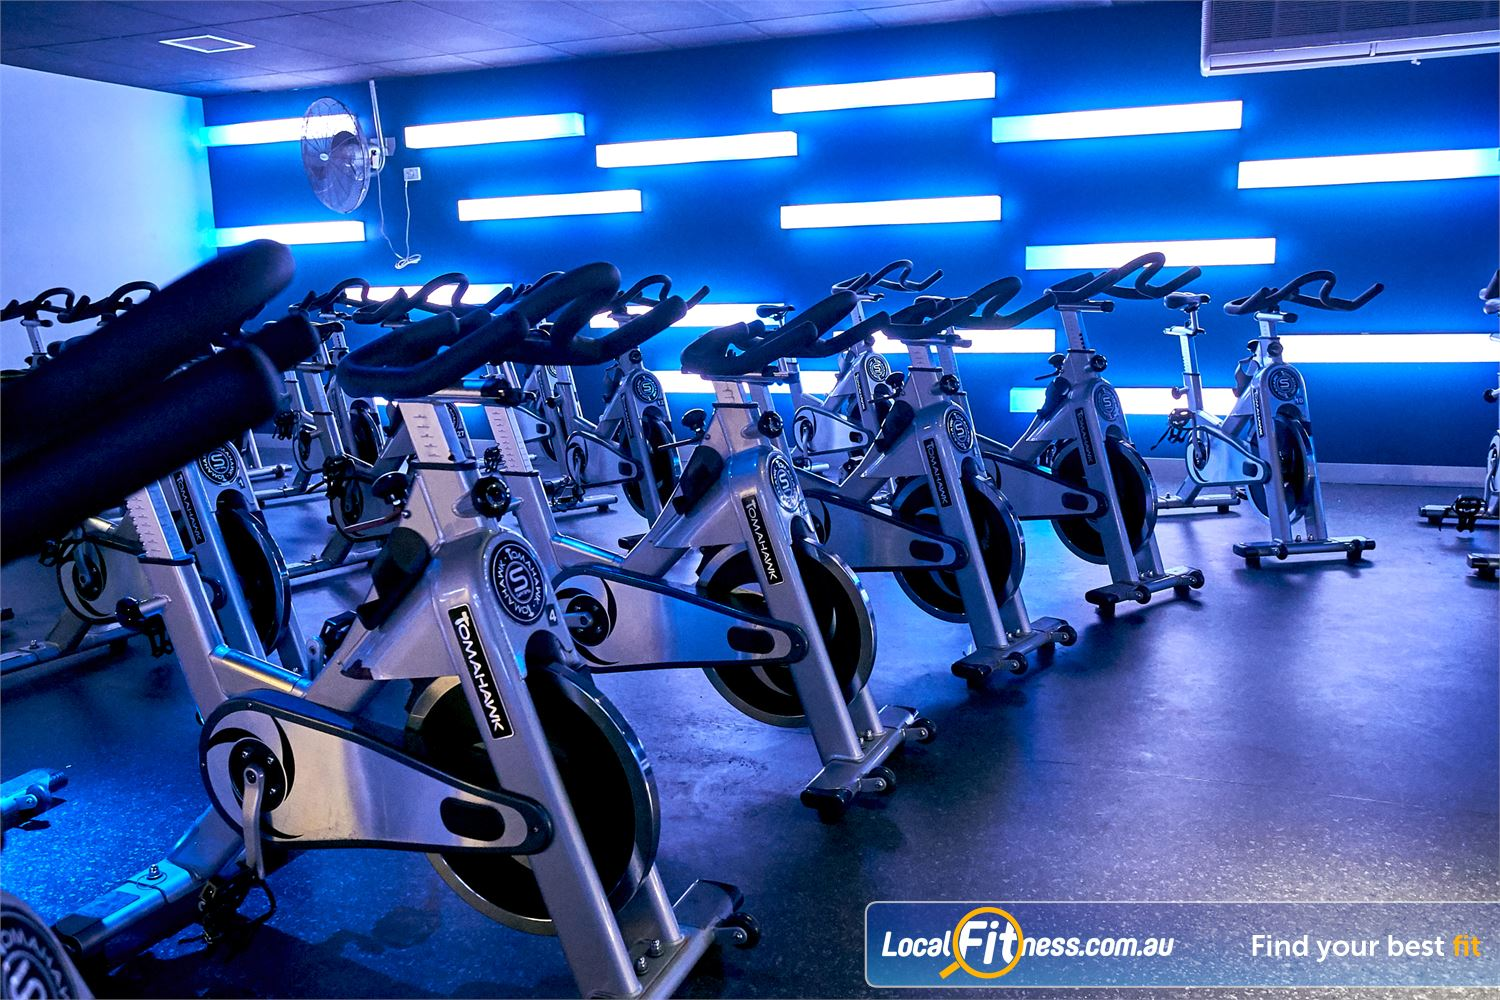 Goodlife Health Clubs Cross Roads Near Hawthorn Utilise top of the range Tomahawk S series Spinning Cycle Bikes.